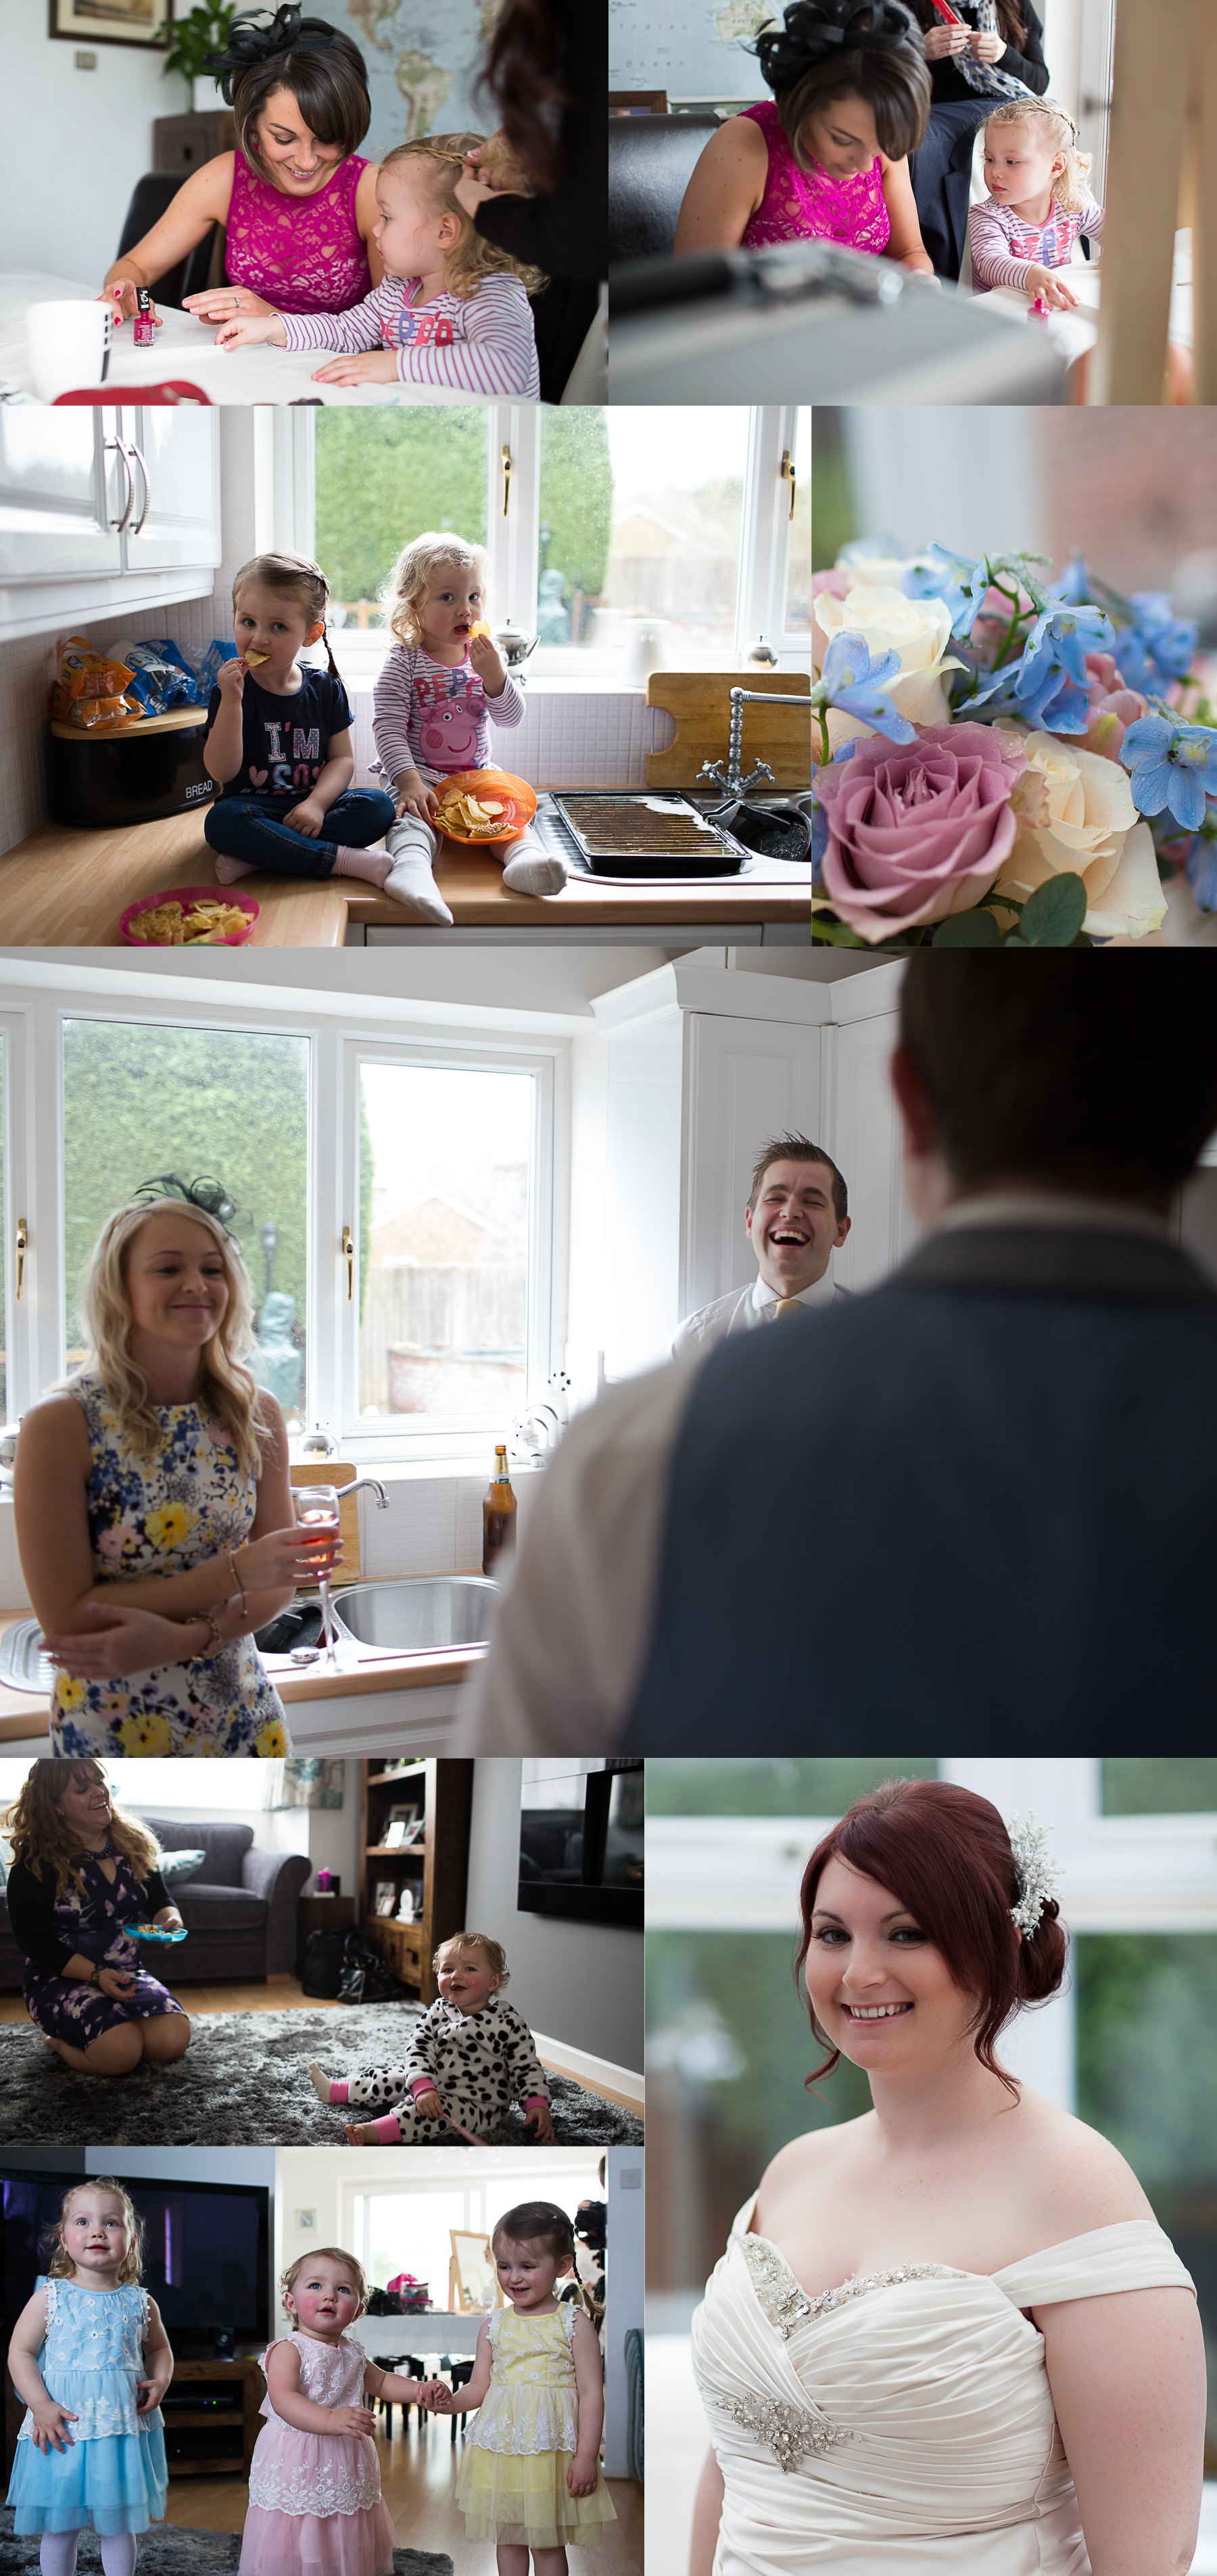 Bristol_Hilton_Wedding_Photography_Mark_Barnes_Block_5.jpg